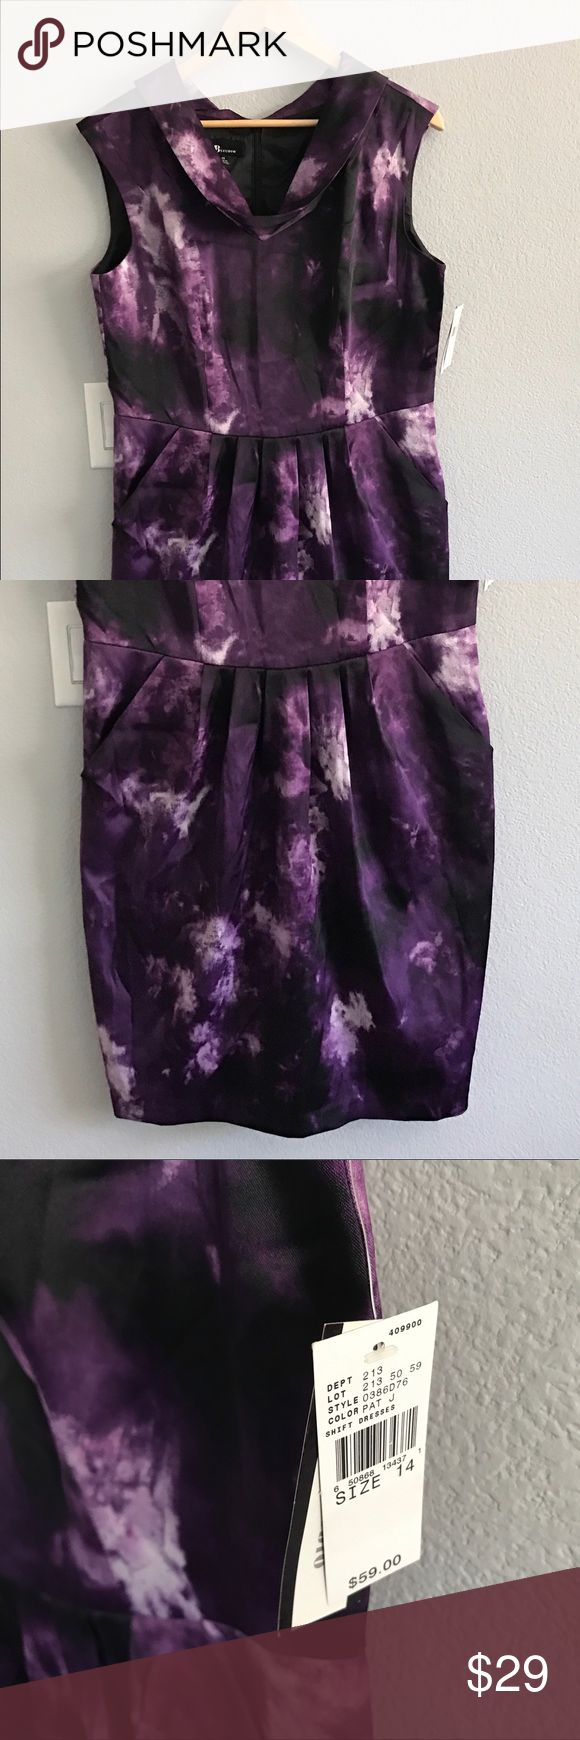 AB STUDIO purple elegant shift dress sz 14 NWT AB STUDIO deep purple elegant dress size 14 NWT, great for a night out or work party. Comes from a pet friendly home. 🐶🐱 AB Studio Dresses